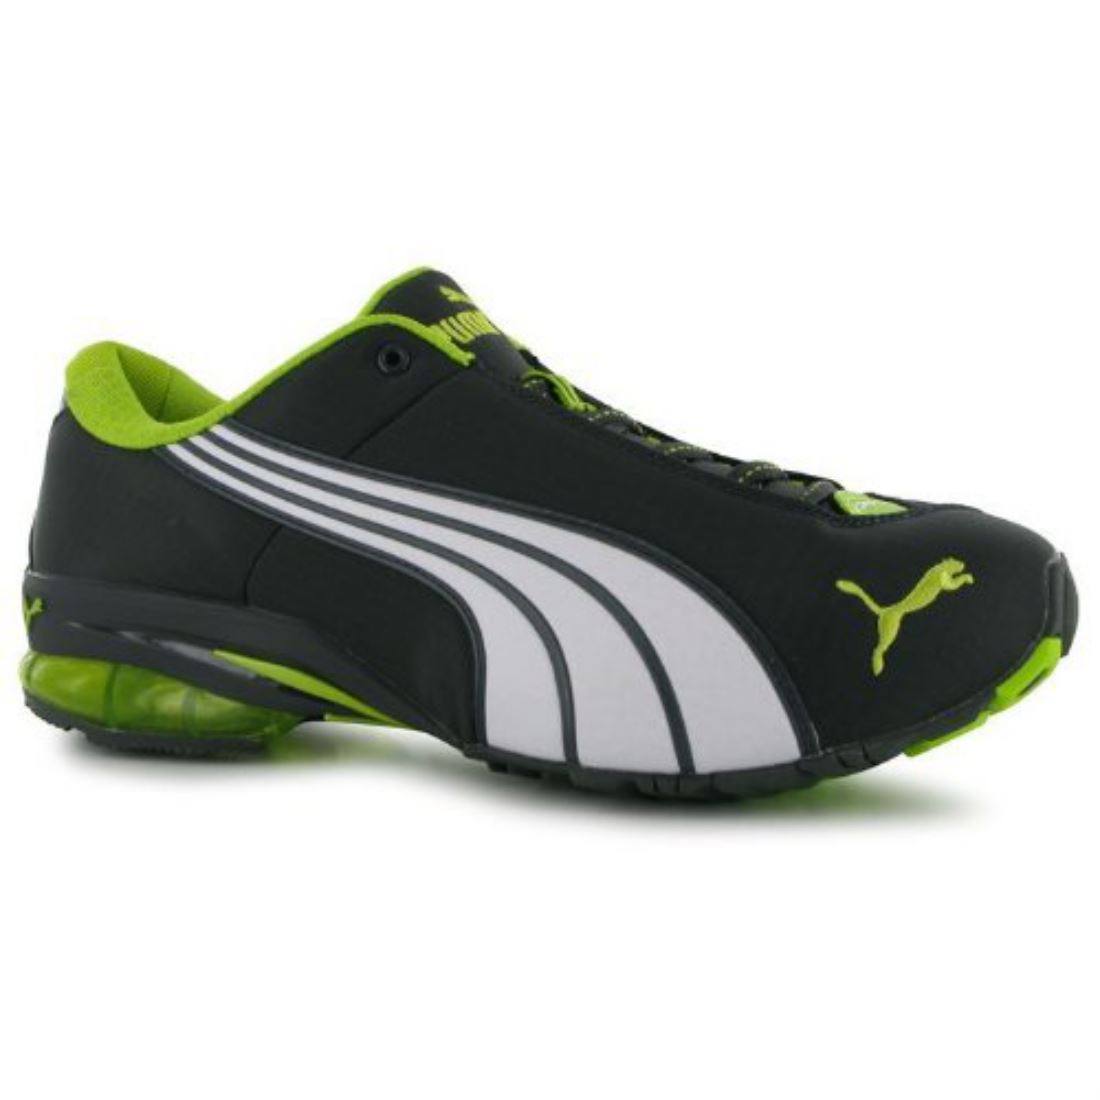 PUMA Gents Match Trainers Running Uomo Schuhes Lace Up  Uomo Running 9acb27